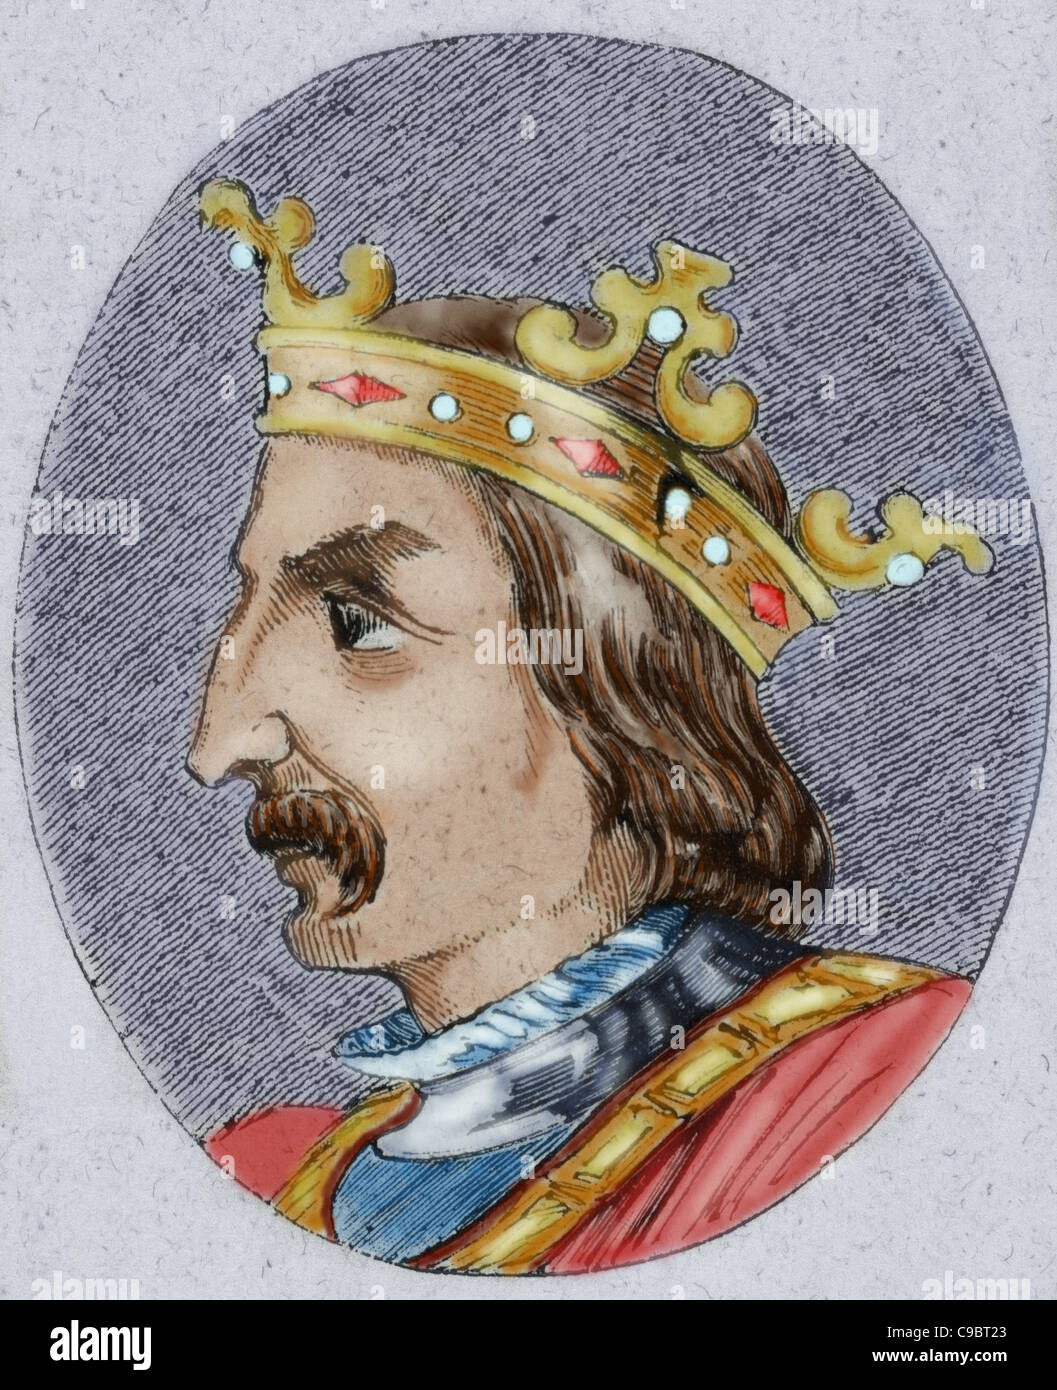 Sancho IV the Brave (1258-1295). King of Castile, Leon and Galicia from 1284 to his death. Colored engraving. - Stock Image